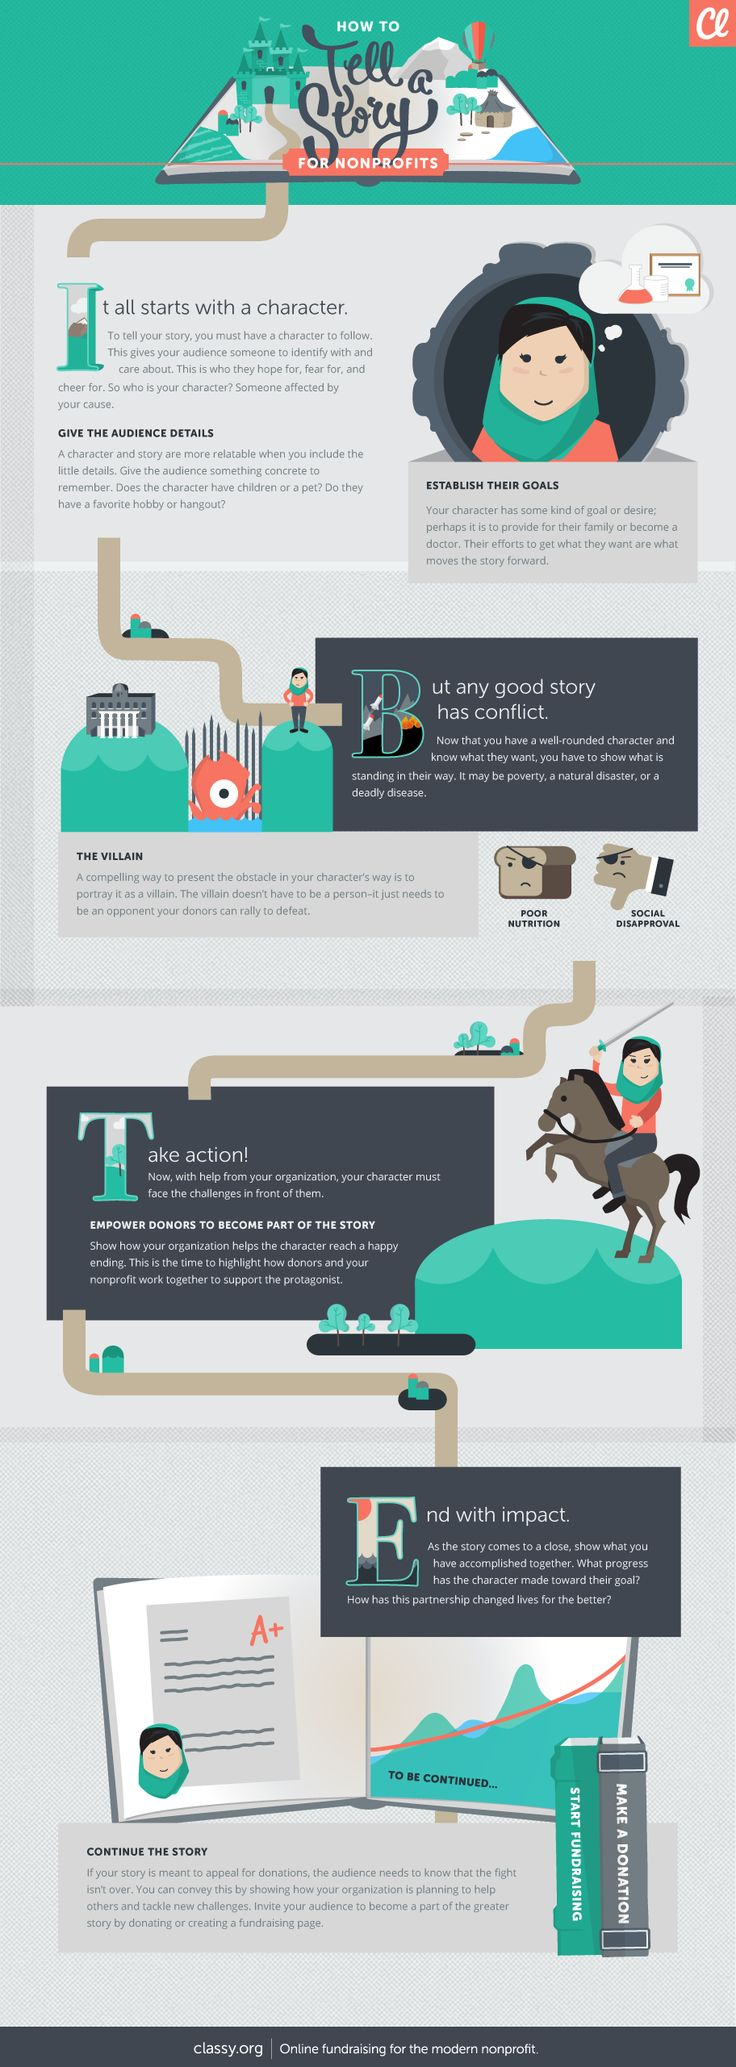 How to tell a fun, compelling non-profit story (Infographic) »  Charity Digital News